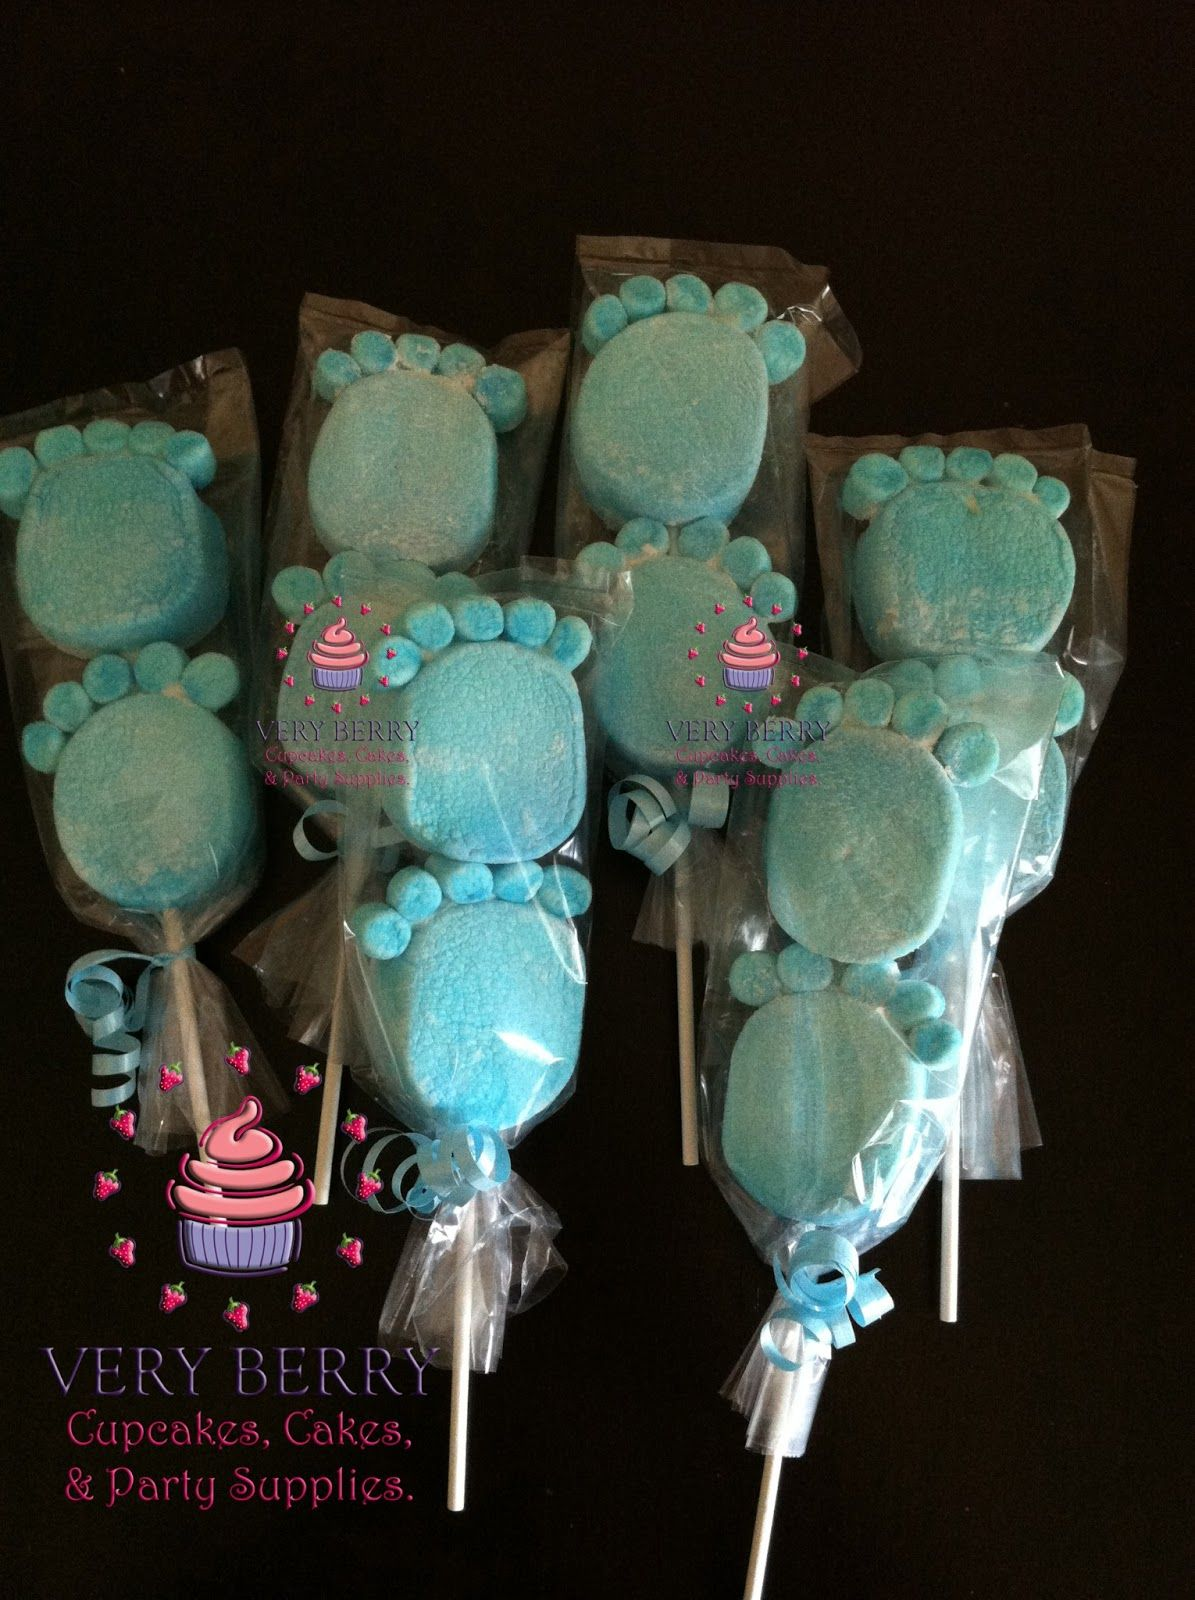 BABY RATTLES FOR BABY-showers parties games decorations /& souveniers